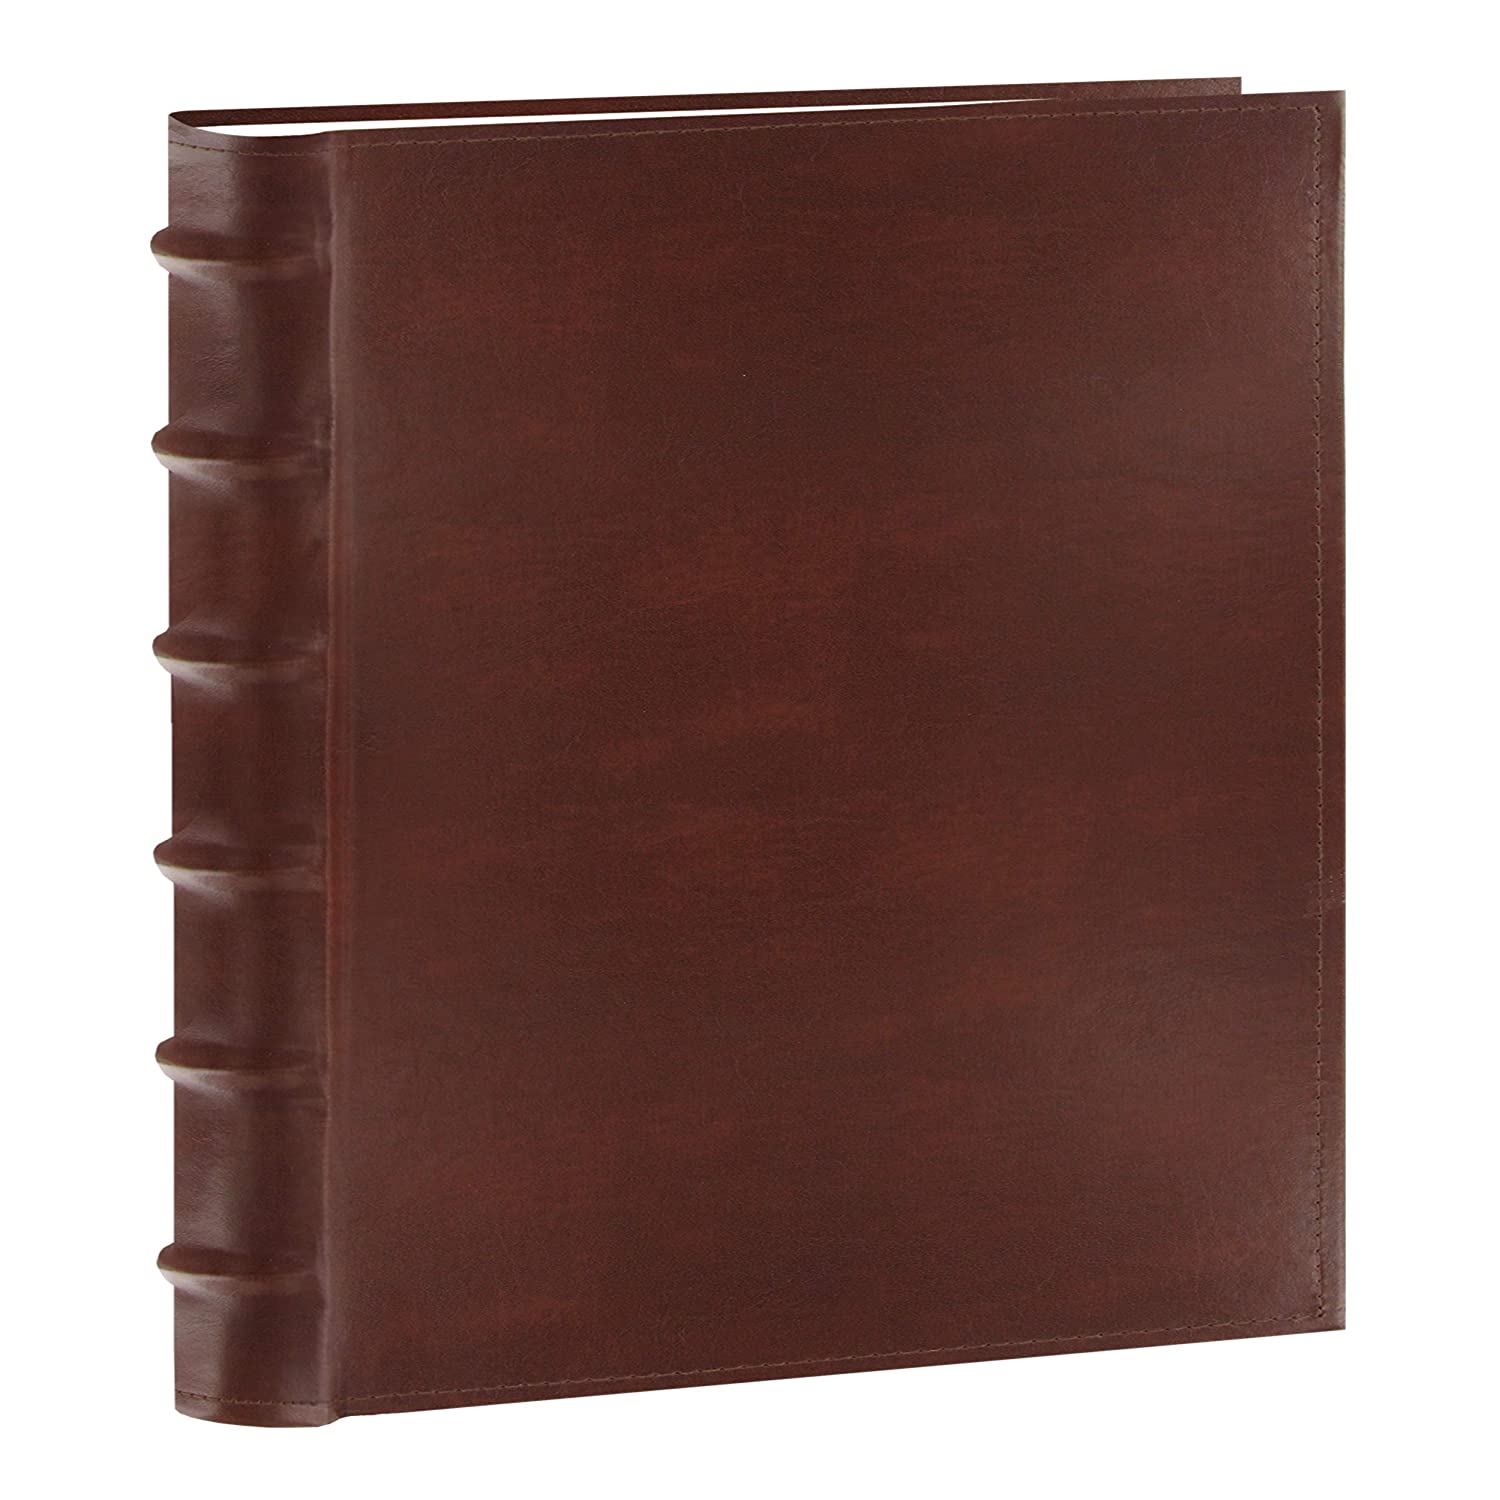 Pioneer Photo Albums CLB-546//BR CLB-546 Burgundy Photo Album 500 Pocket 4x6,